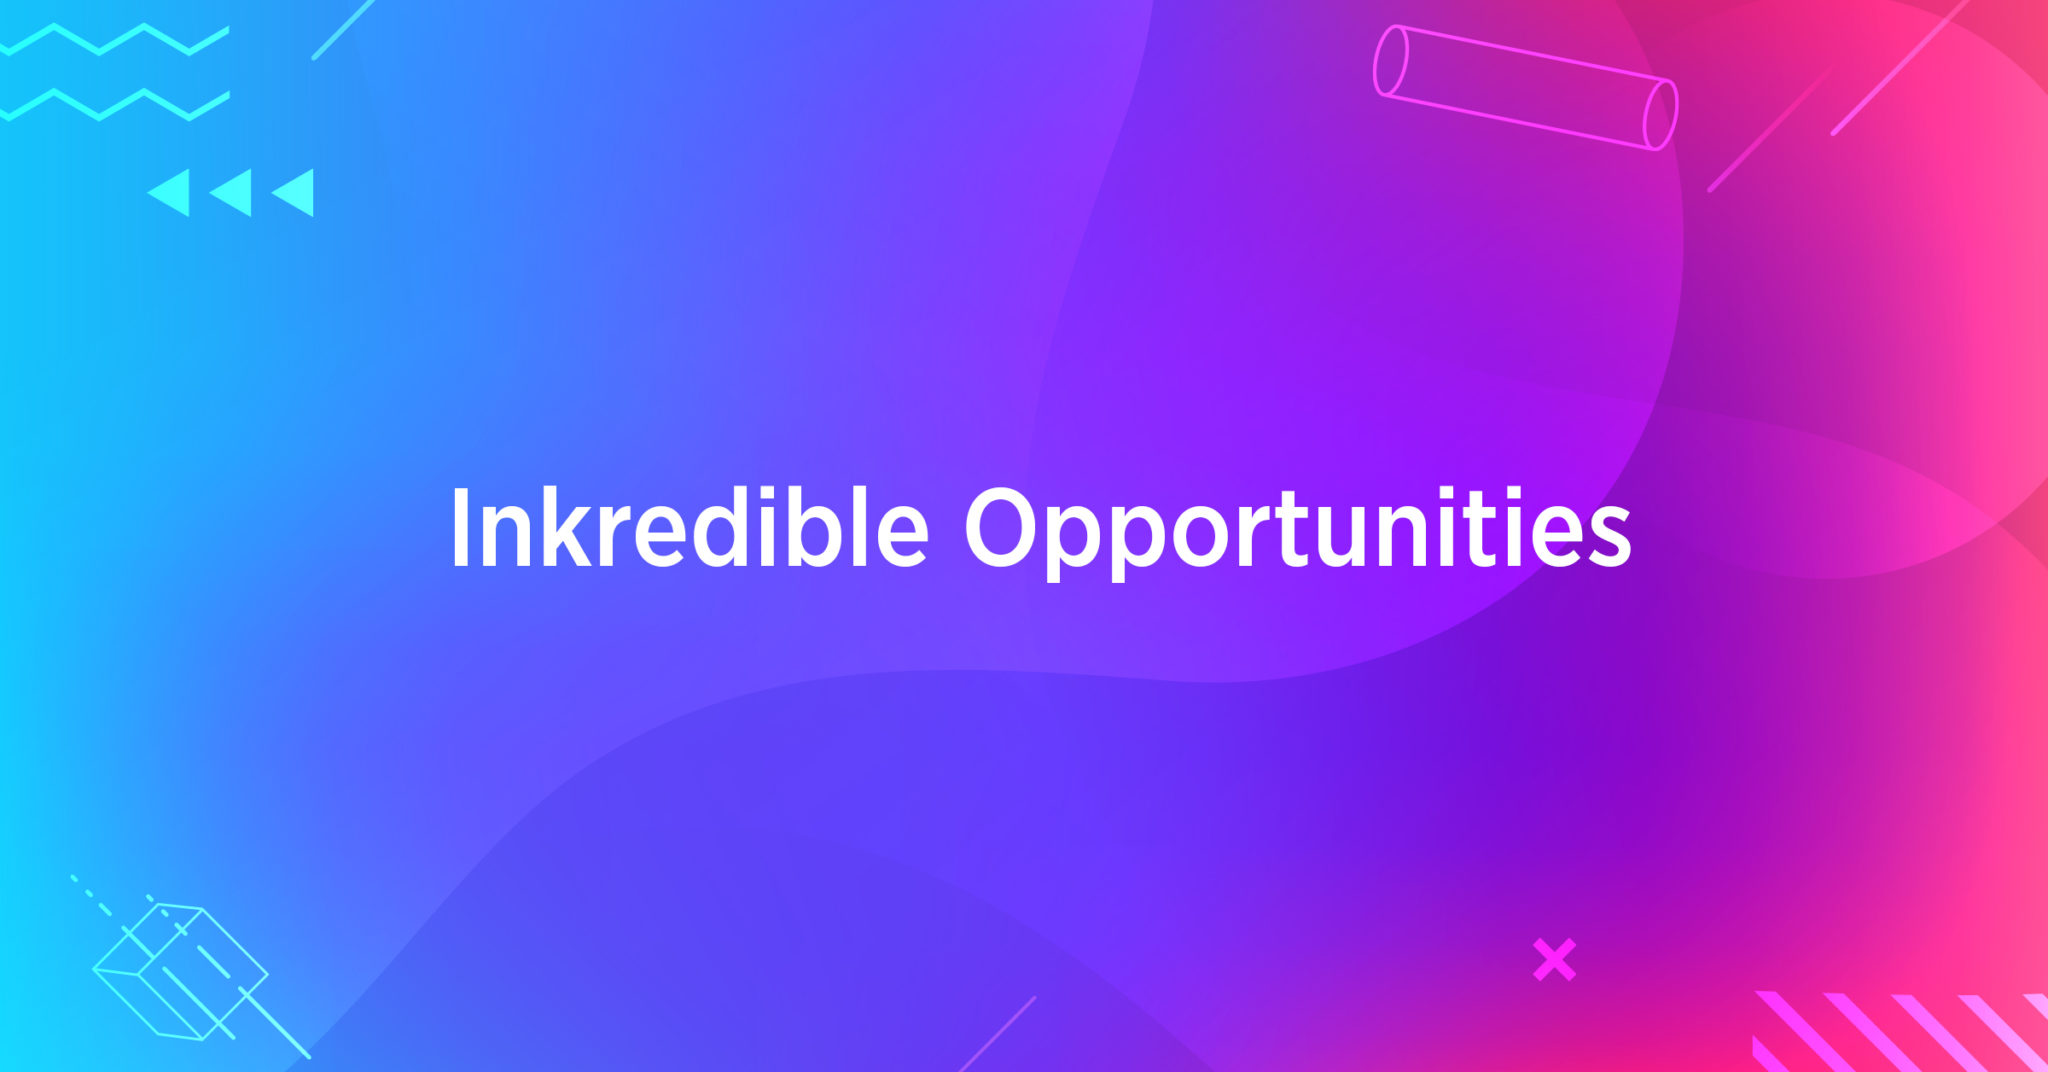 Inkredible Opportunities, April 2nd